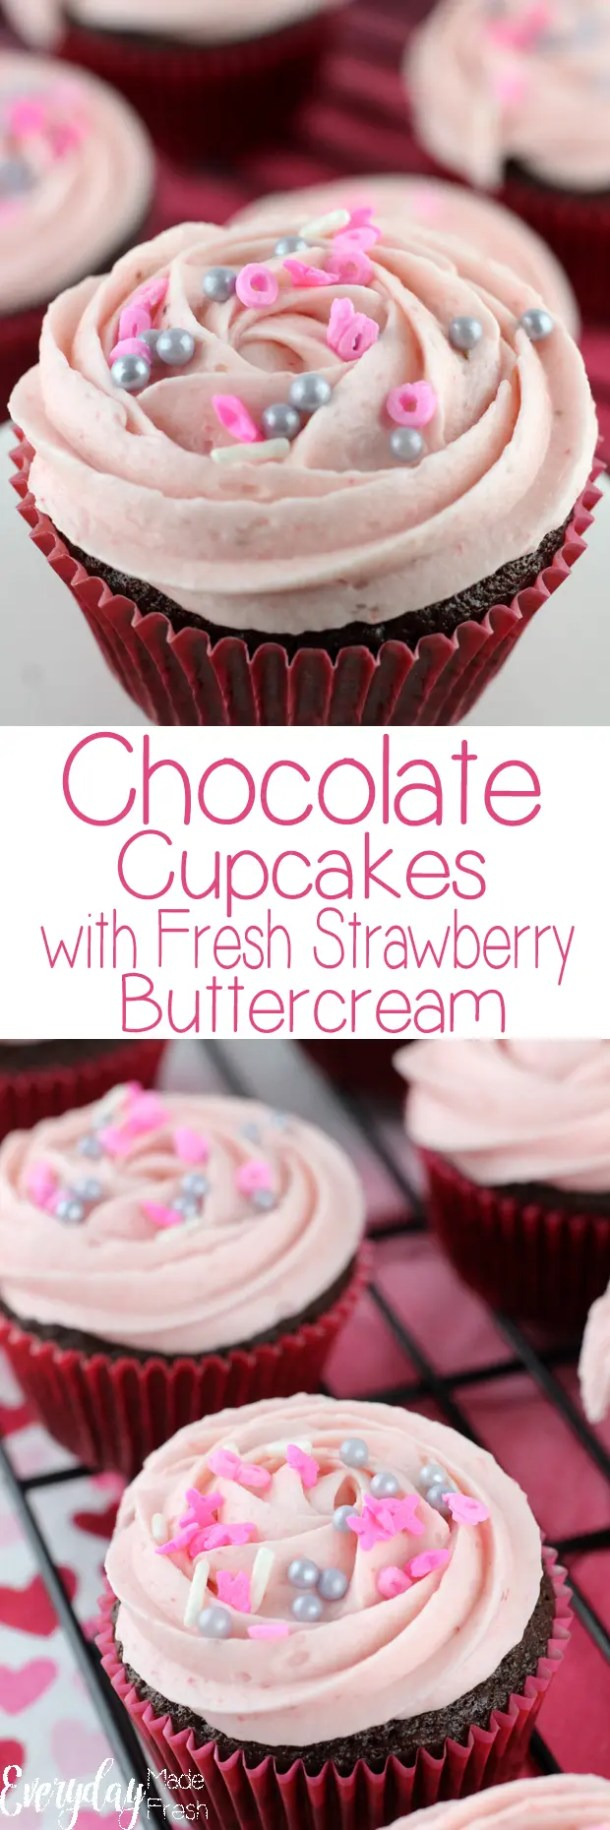 Chocolate Cupcakes with Fresh Strawberry Buttercream are made with the most moist, rich and flavorful chocolate base; topped with strawberry buttercream that's made with fresh strawberry puree.    EverydayMadeFresh.com